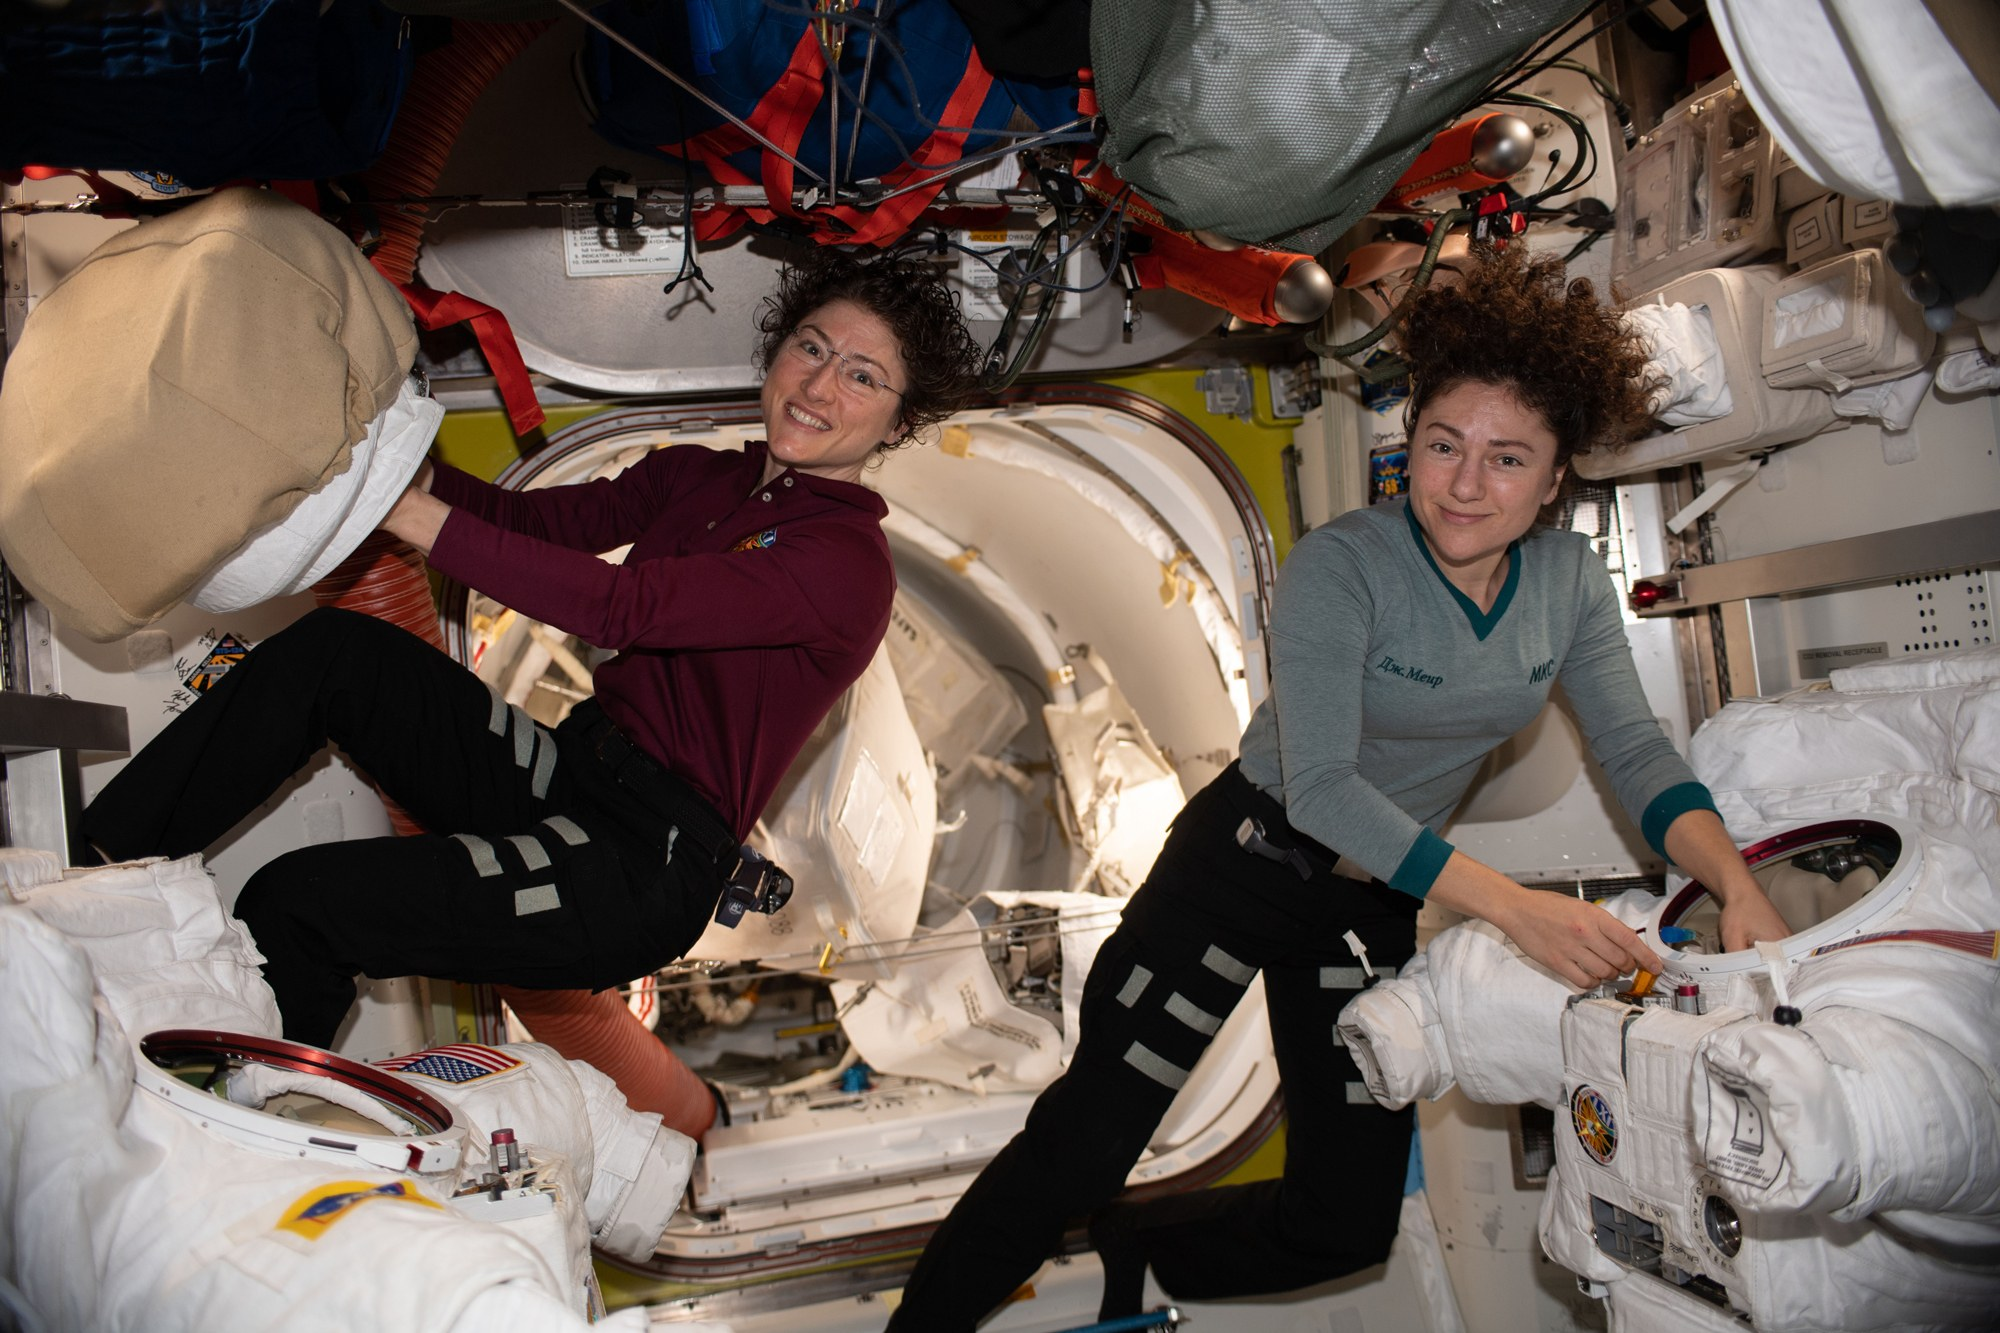 Christina Koch and Jessica Meir: The Stellar Women of the ISS